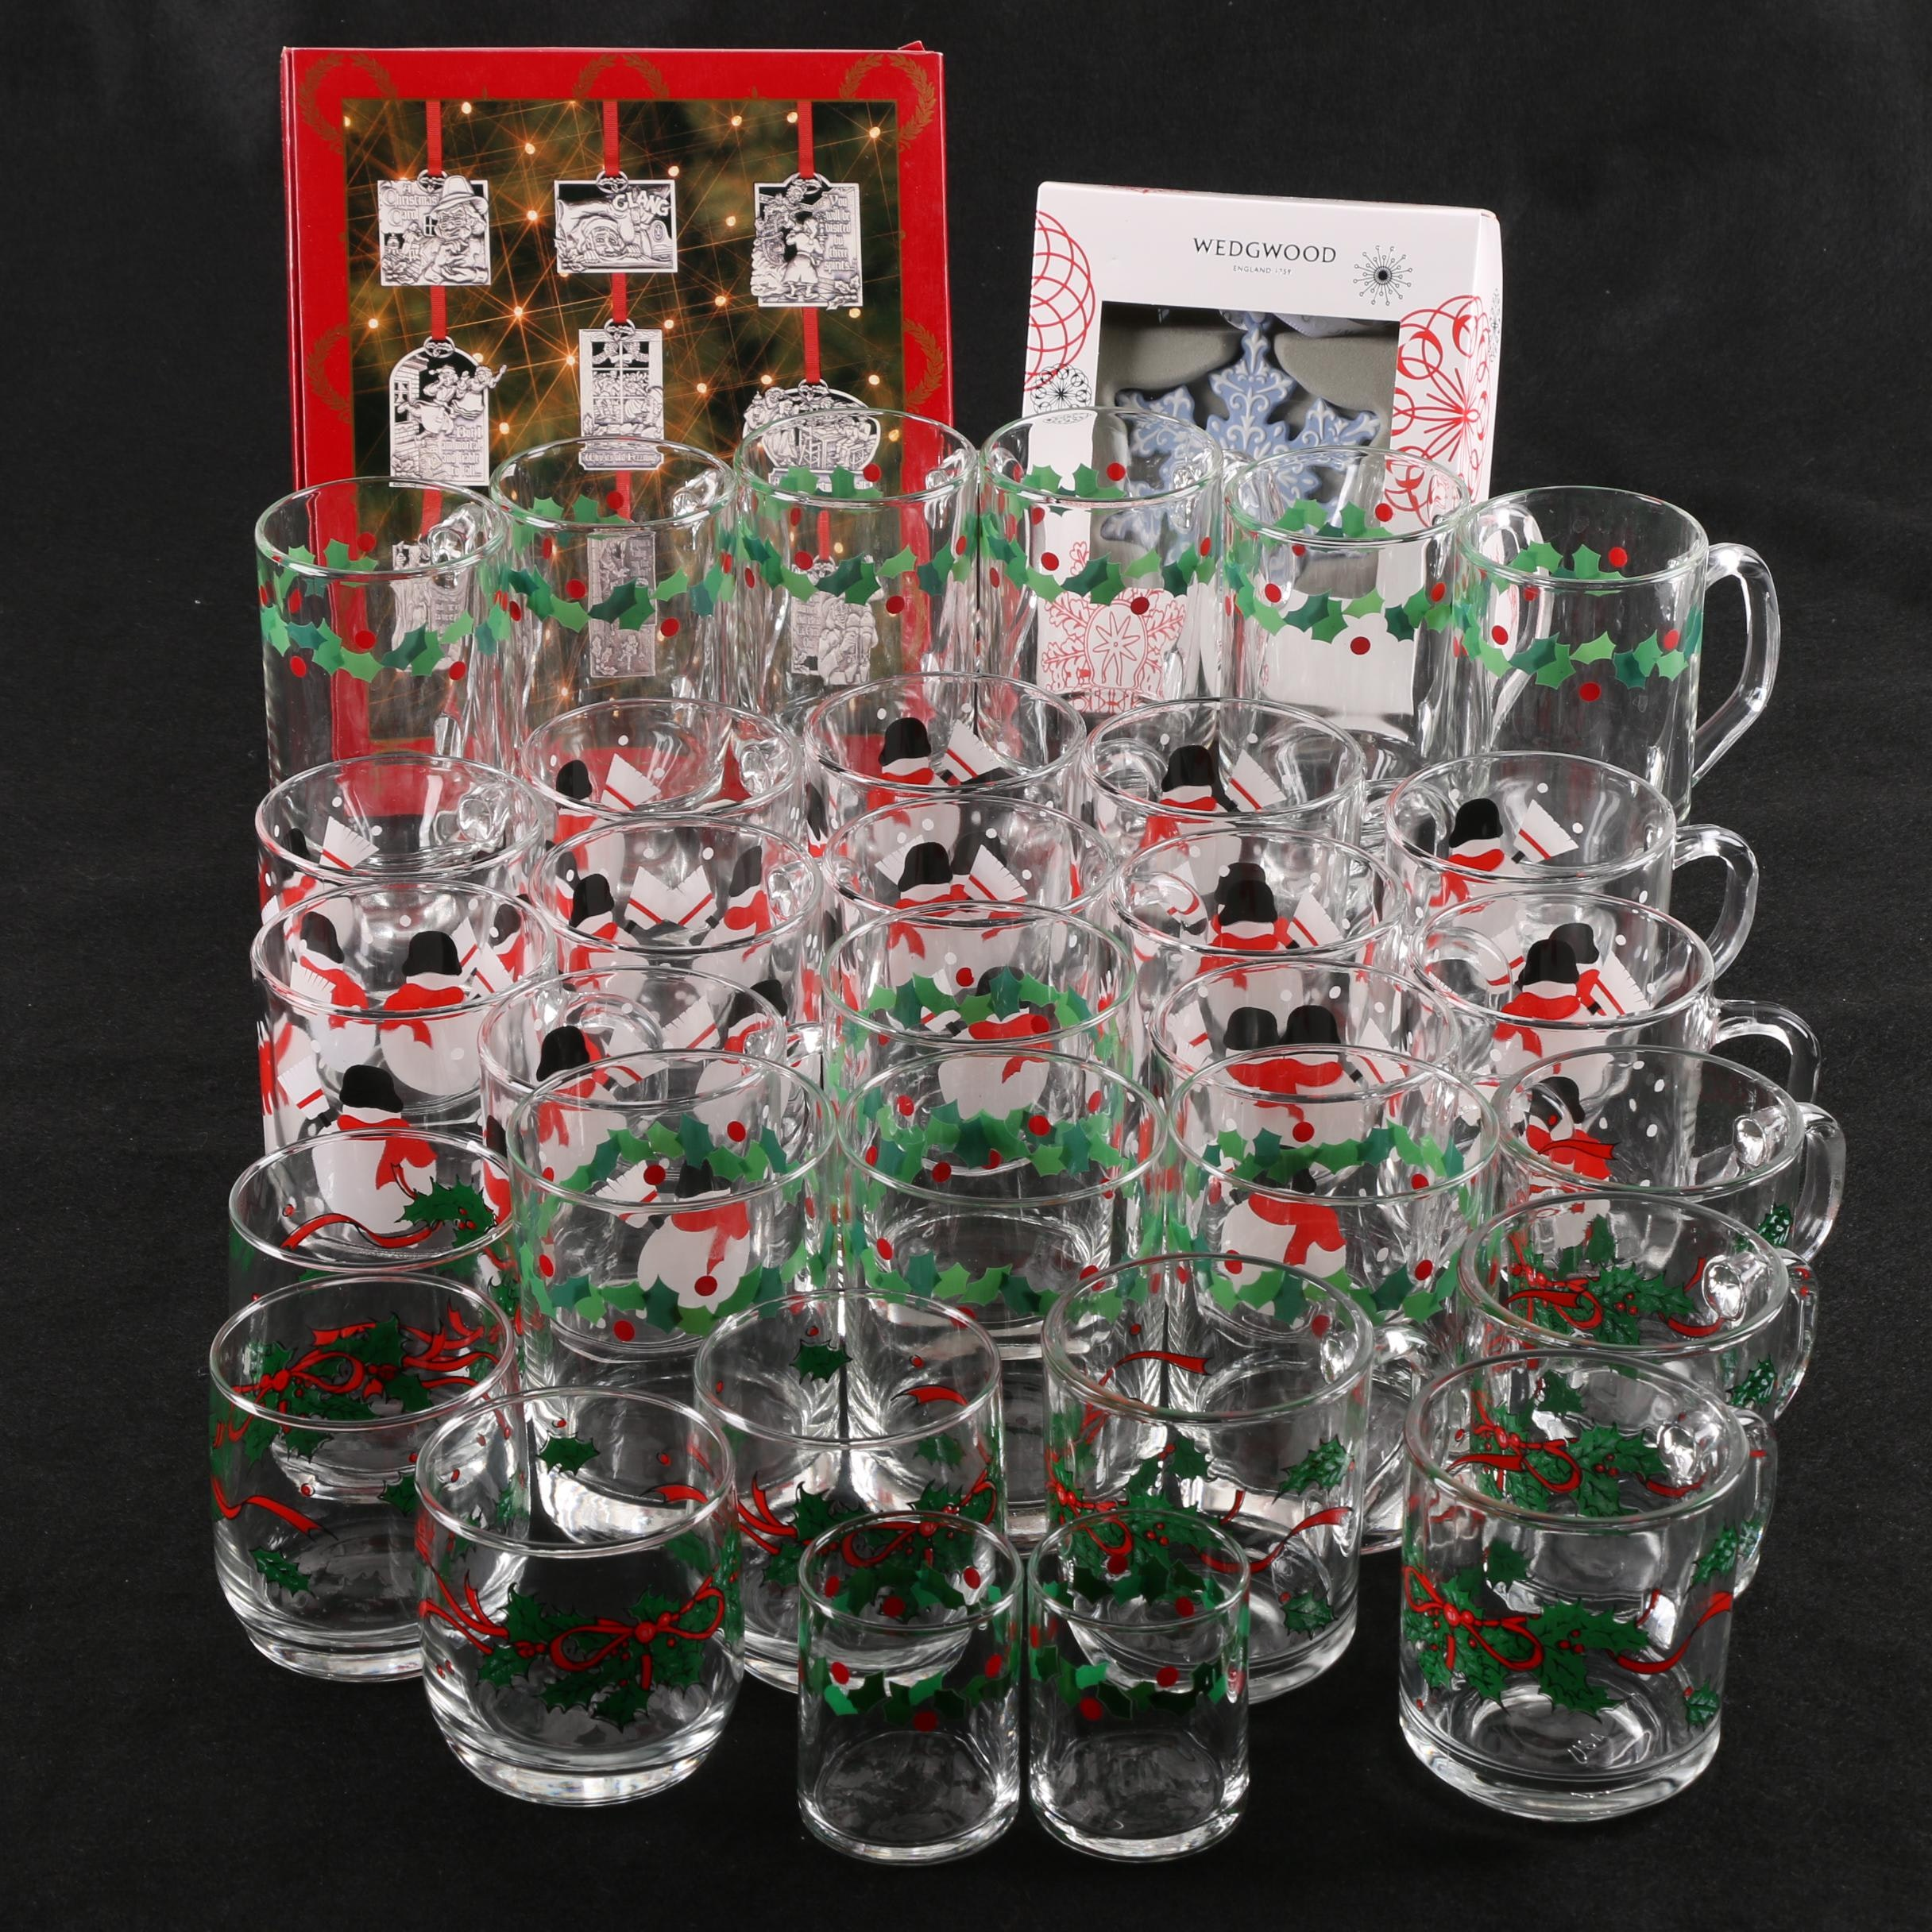 Christmas Themed Glassware and Ornaments